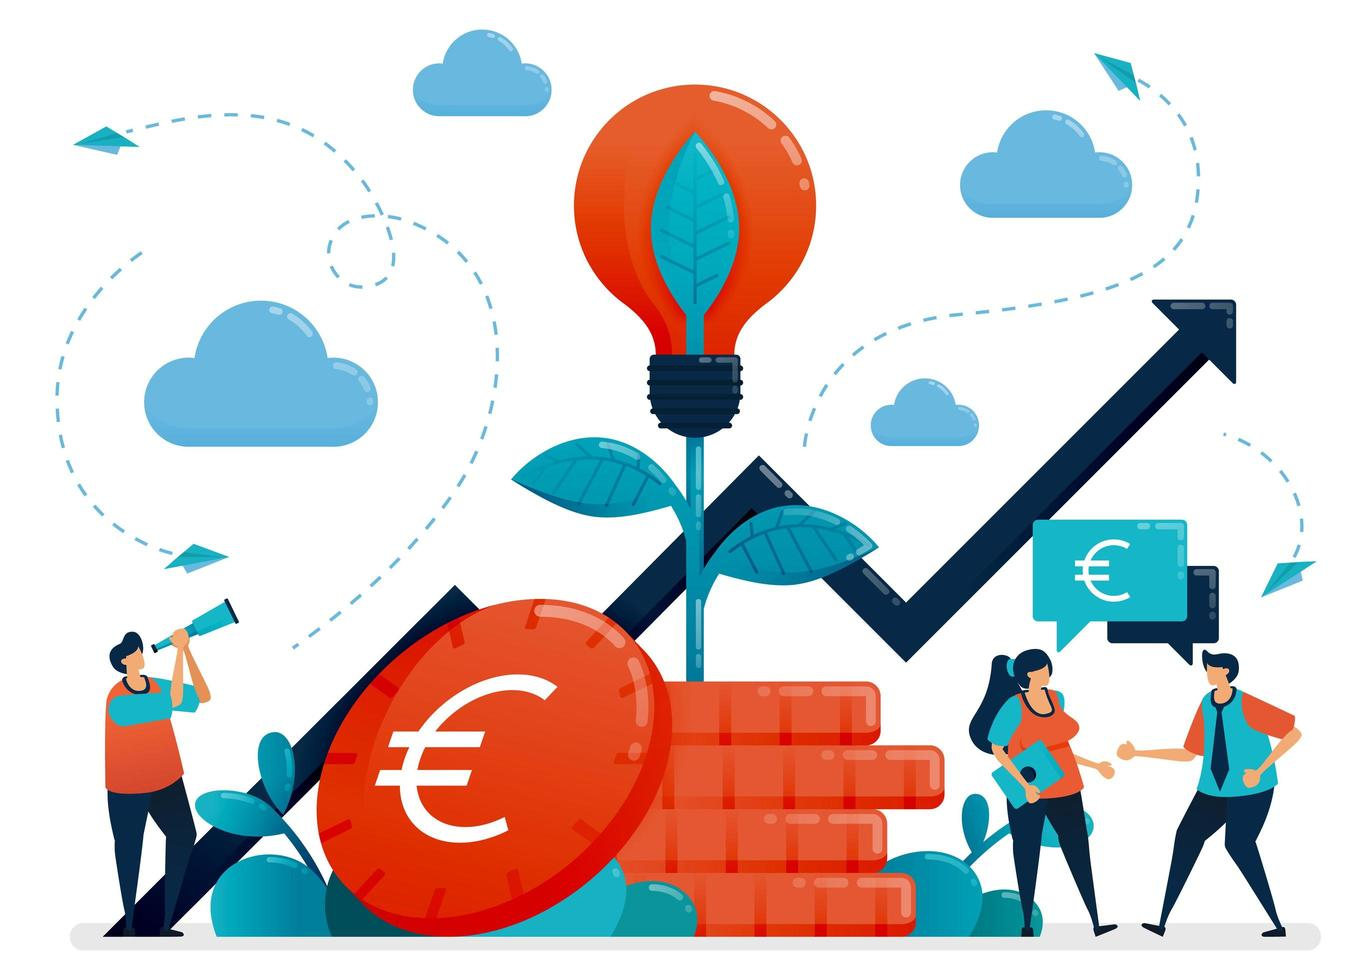 Ideas for investment. Bank interest and savings growth. Light bulb metaphor in euro coin plant. Mutual funds for banking investment. Vector illustration, graphic design, card, banner, brochure, flyer